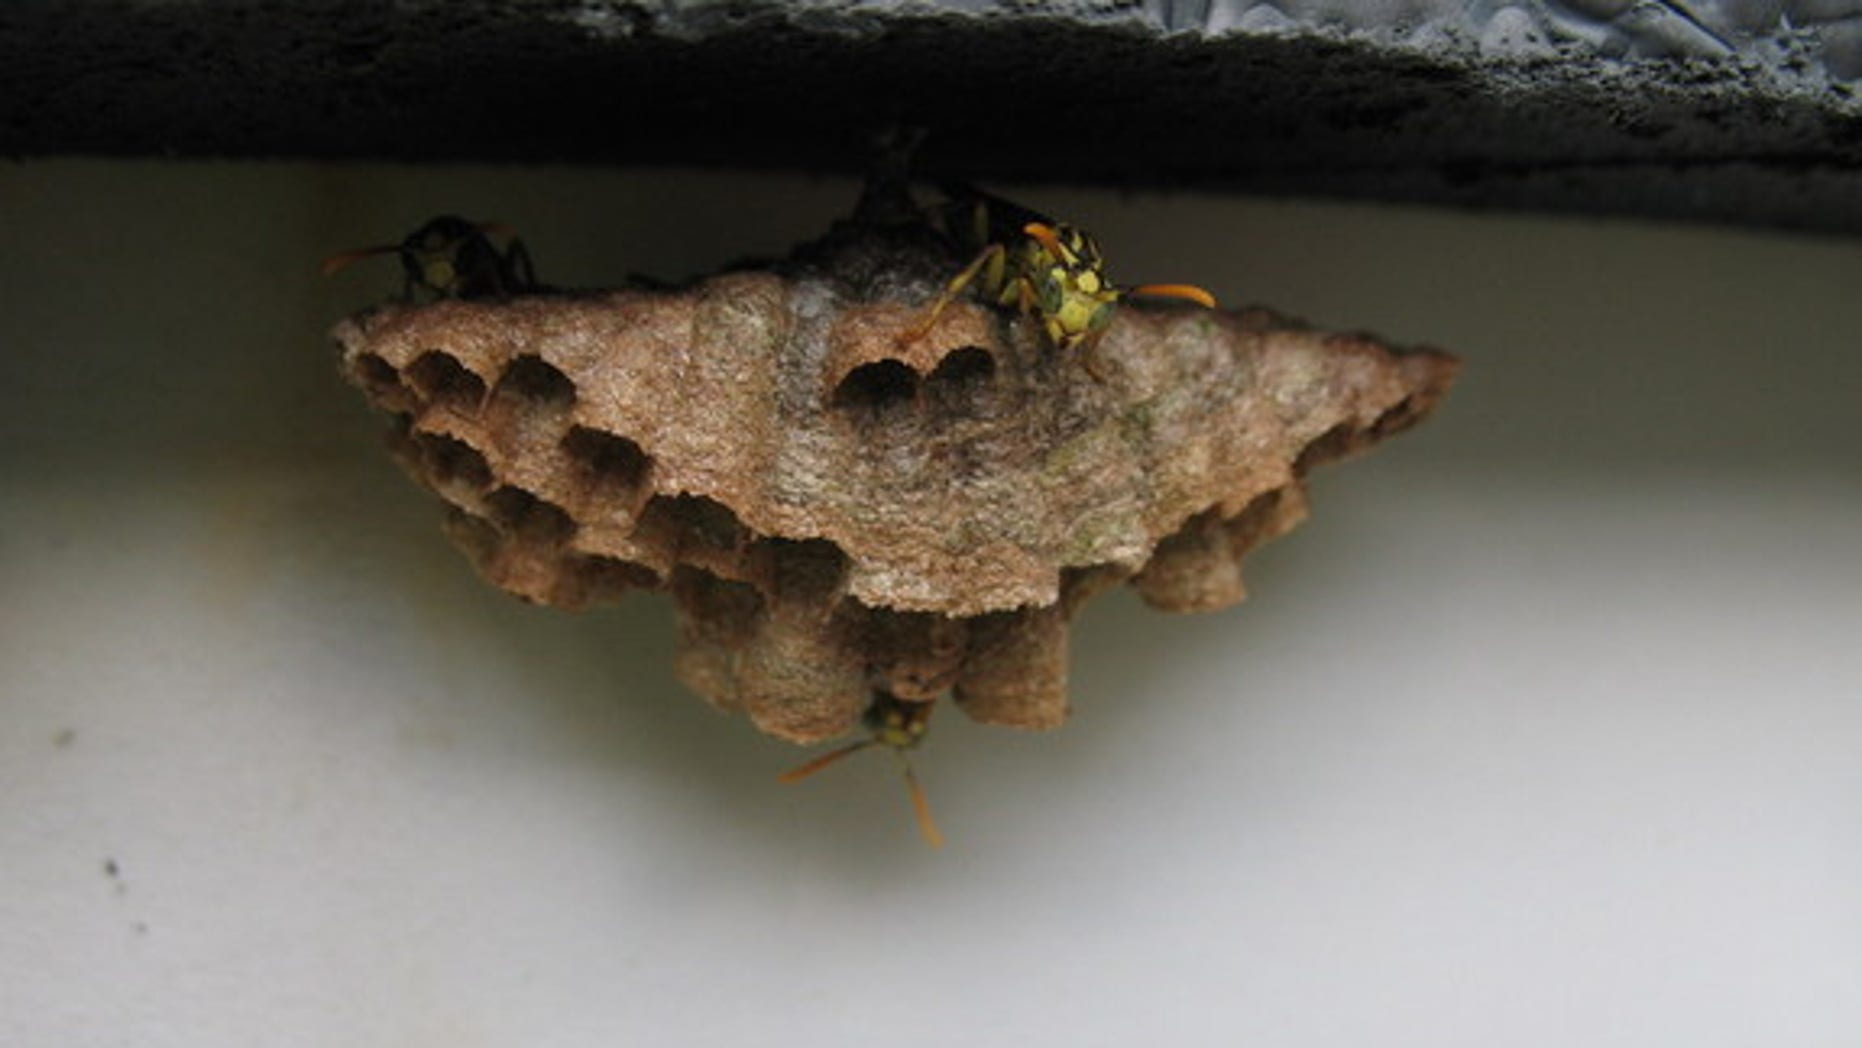 A small nest built by wasps (<i>Mischocyttarus mexicanum</i>) in Costa Rica. These wasps have small colonies, and may be a transition species between solitary and social wasps, researchers said.